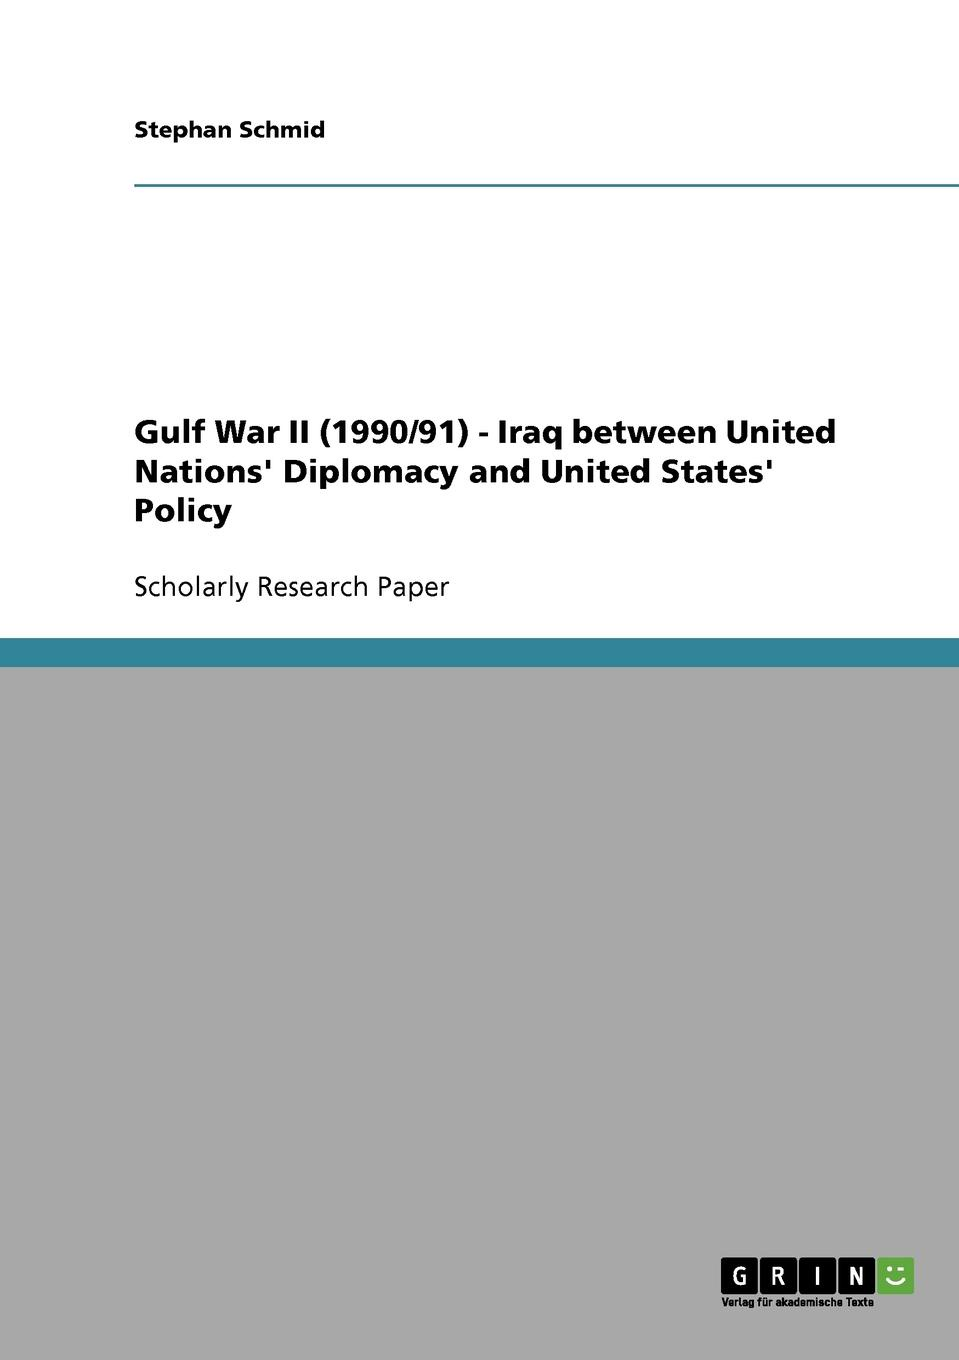 Stephan Schmid Gulf War II (1990/91) - Iraq between United Nations. Diplomacy and United States. Policy nanna lord mallam the politics of the united nations security council reform